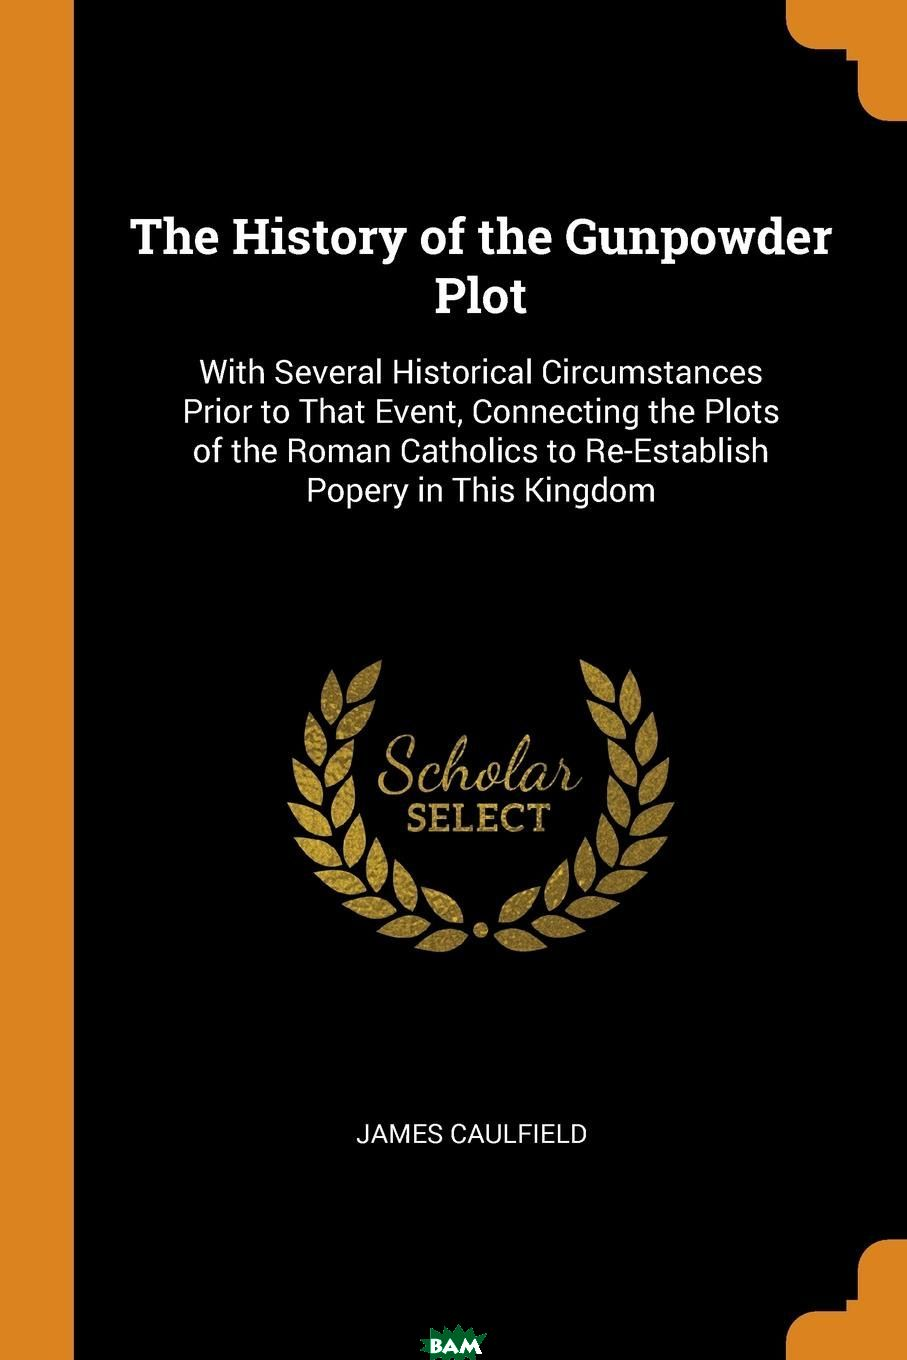 Купить The History of the Gunpowder Plot. With Several Historical Circumstances Prior to That Event, Connecting the Plots of the Roman Catholics to Re-Establish Popery in This Kingdom, James Caulfield, 9780342245963